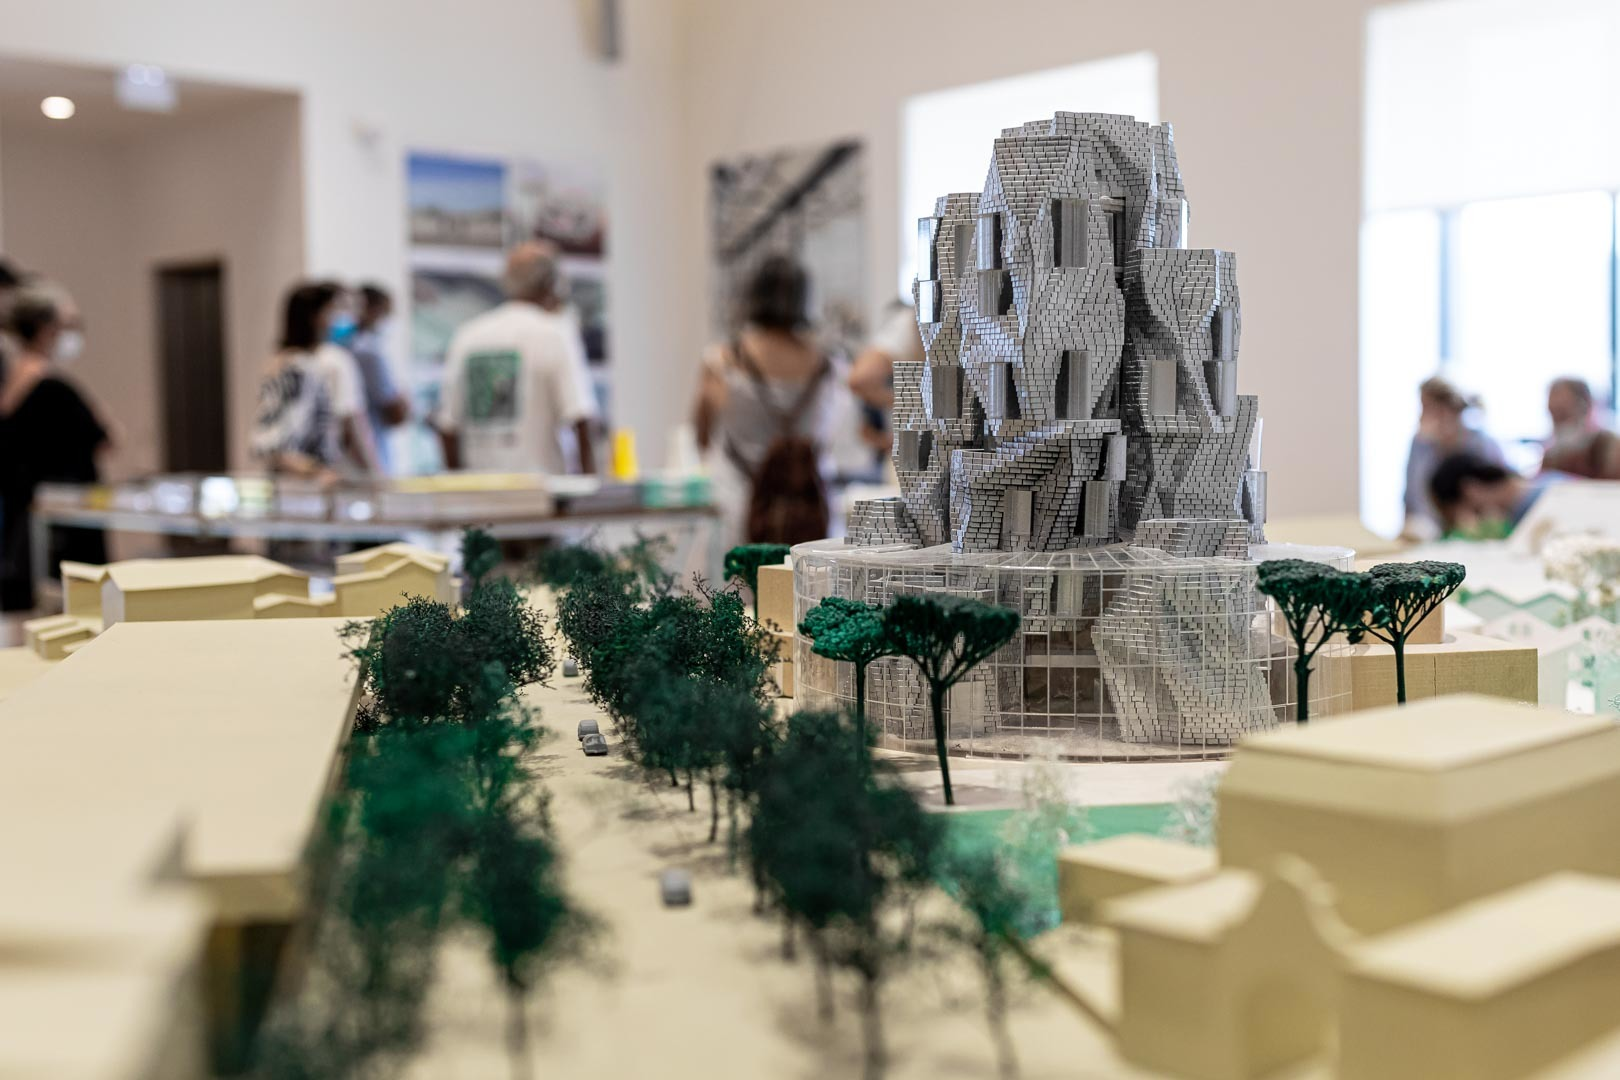 Come and discover the history of the Parc des Ateliers and the architectural and landscaping project carried out by Luma Arles by following a guided tour.